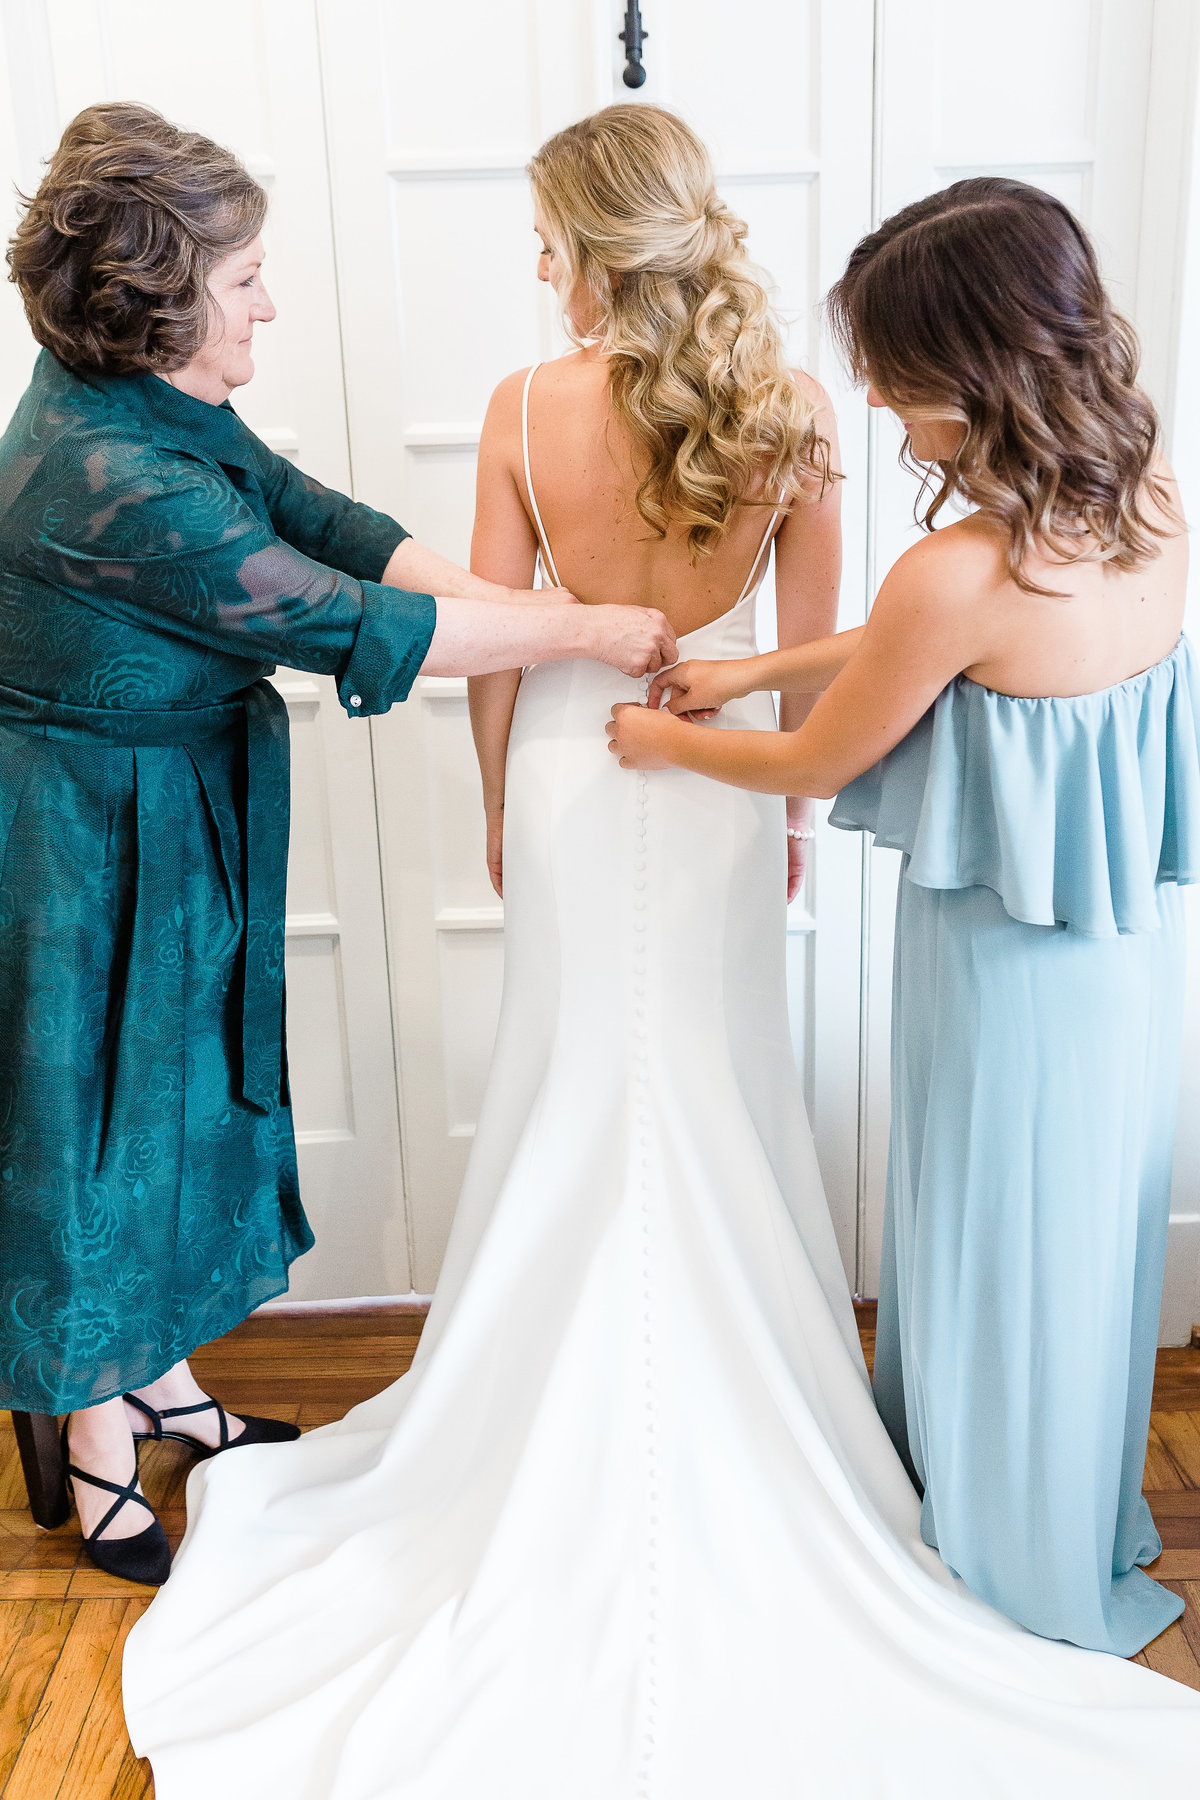 Charleston Weddings- Nancy Lempesis Photography - Wedding Phtography (62)